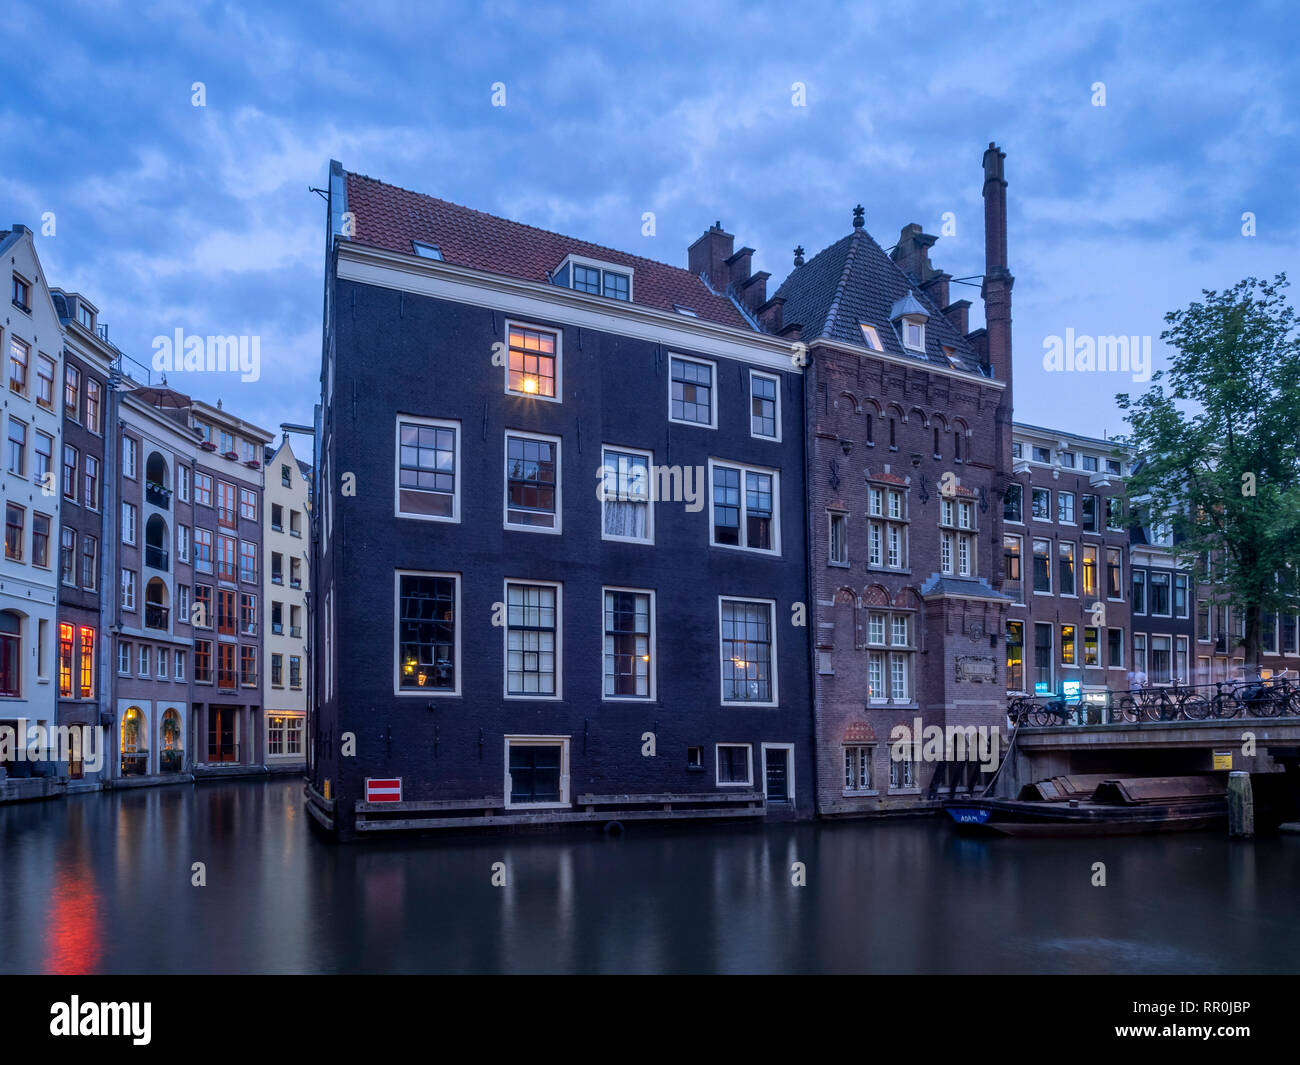 Traditional canal houses at dusk in Amsterdam. Buildings on the canal are a form of traditional Dutch architecture. - Stock Image